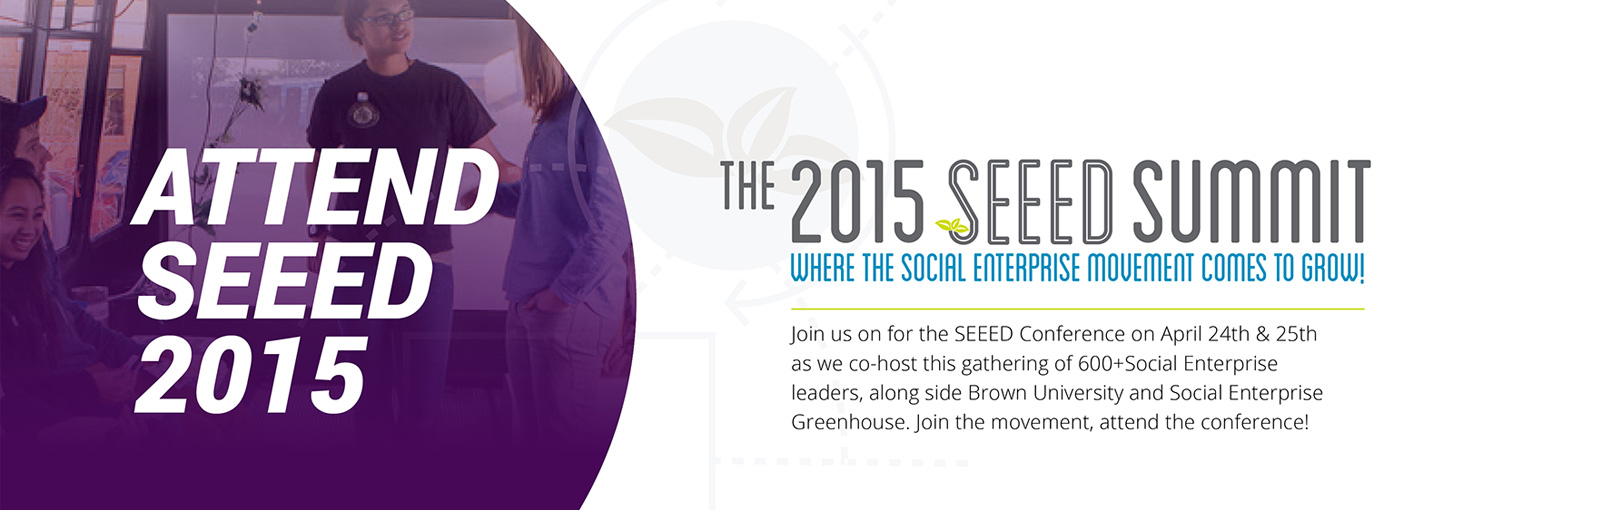 Worldways introduced the new SEEED brand, and co-hosted this gathering of 500+ social enterprise leaders alongside Brown University and Social Enterprise Greenhouse.